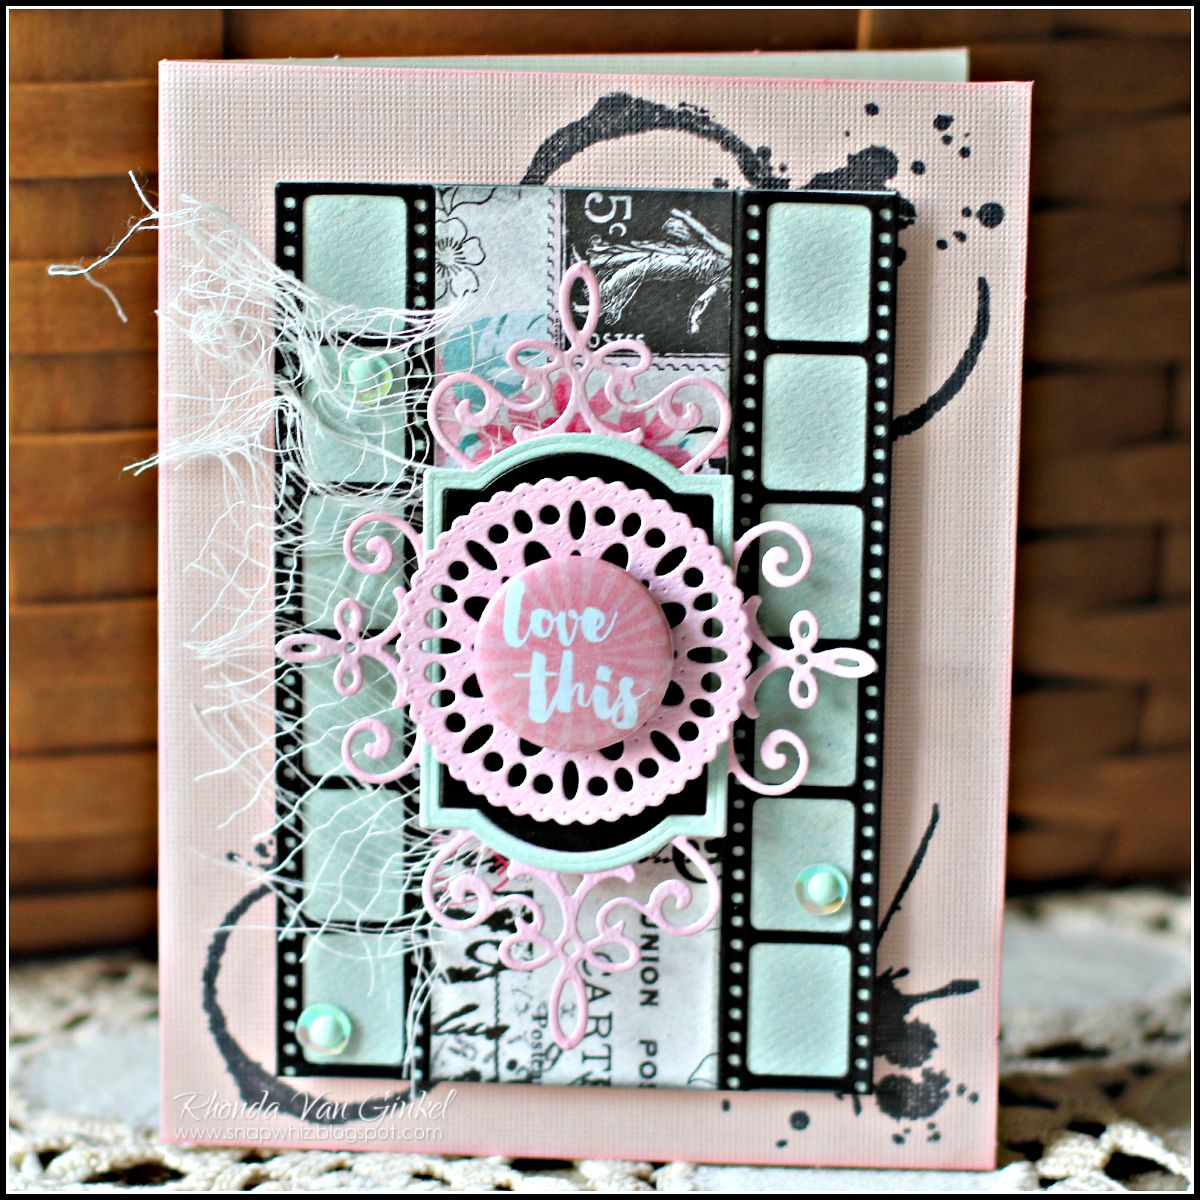 Love This card for C'est Magnifique Kit Club designed by guest designer Rhonda Van Ginkel